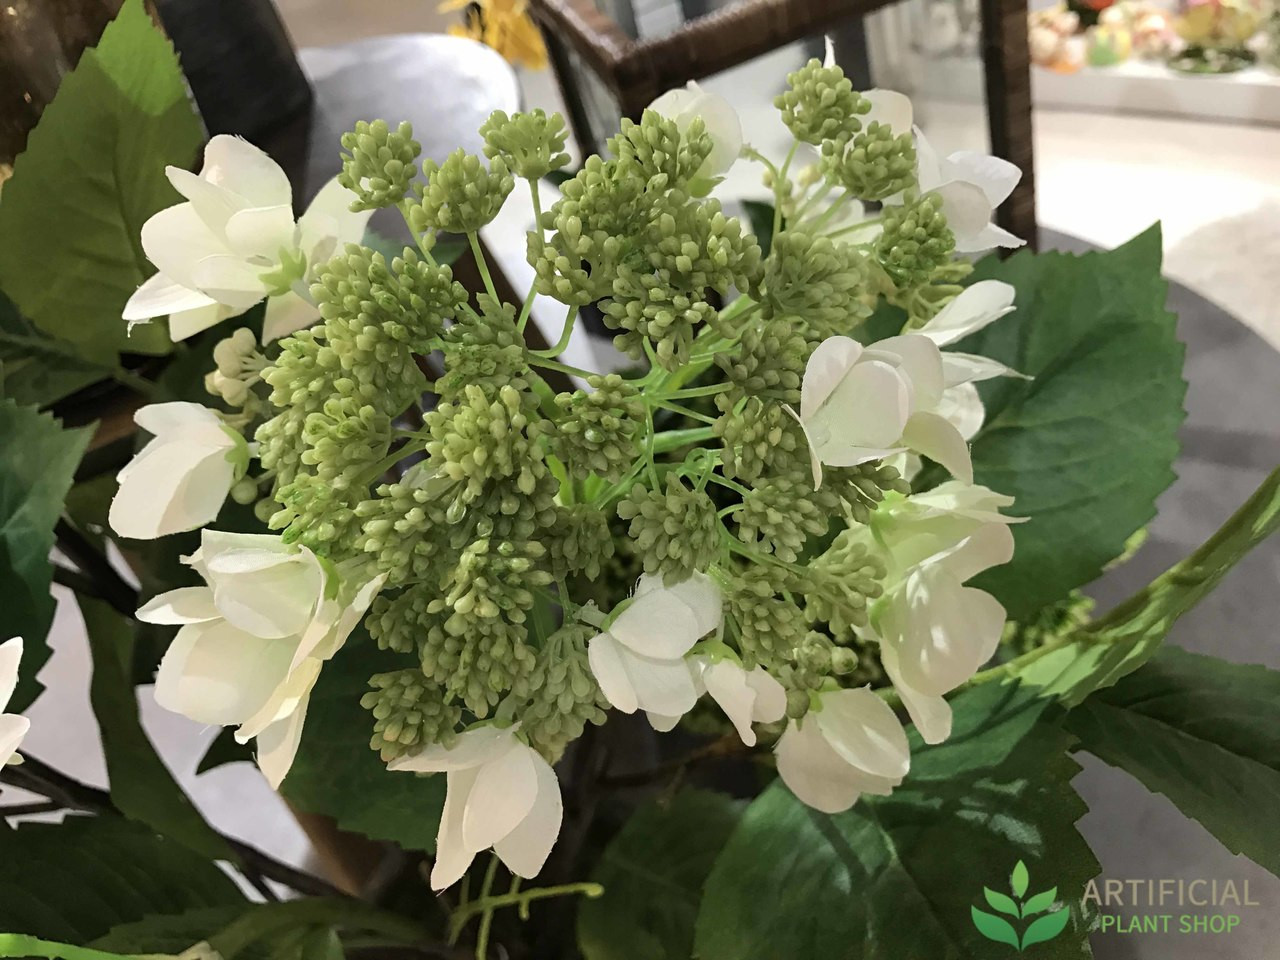 Artificial Flowers - White Hydrangeaa